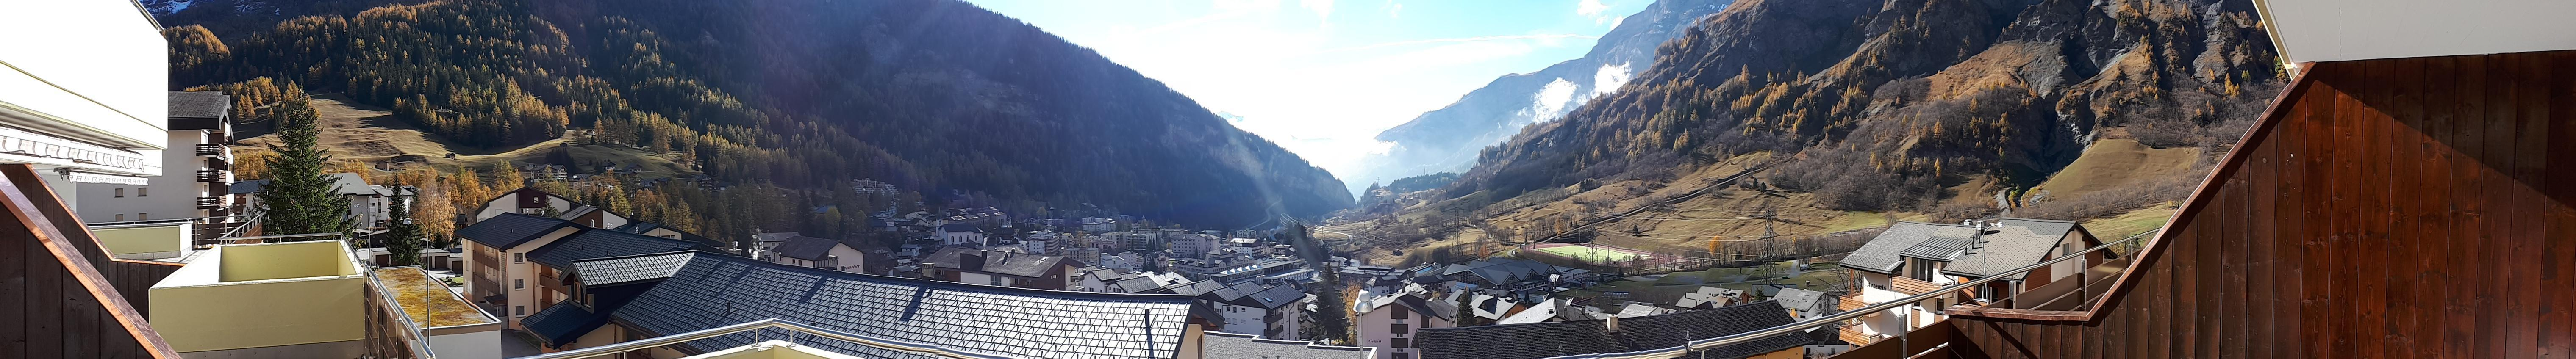 Holiday apartment Tschal  Leukerbad (426689), Leukerbad, Leukerbad, Valais, Switzerland, picture 11